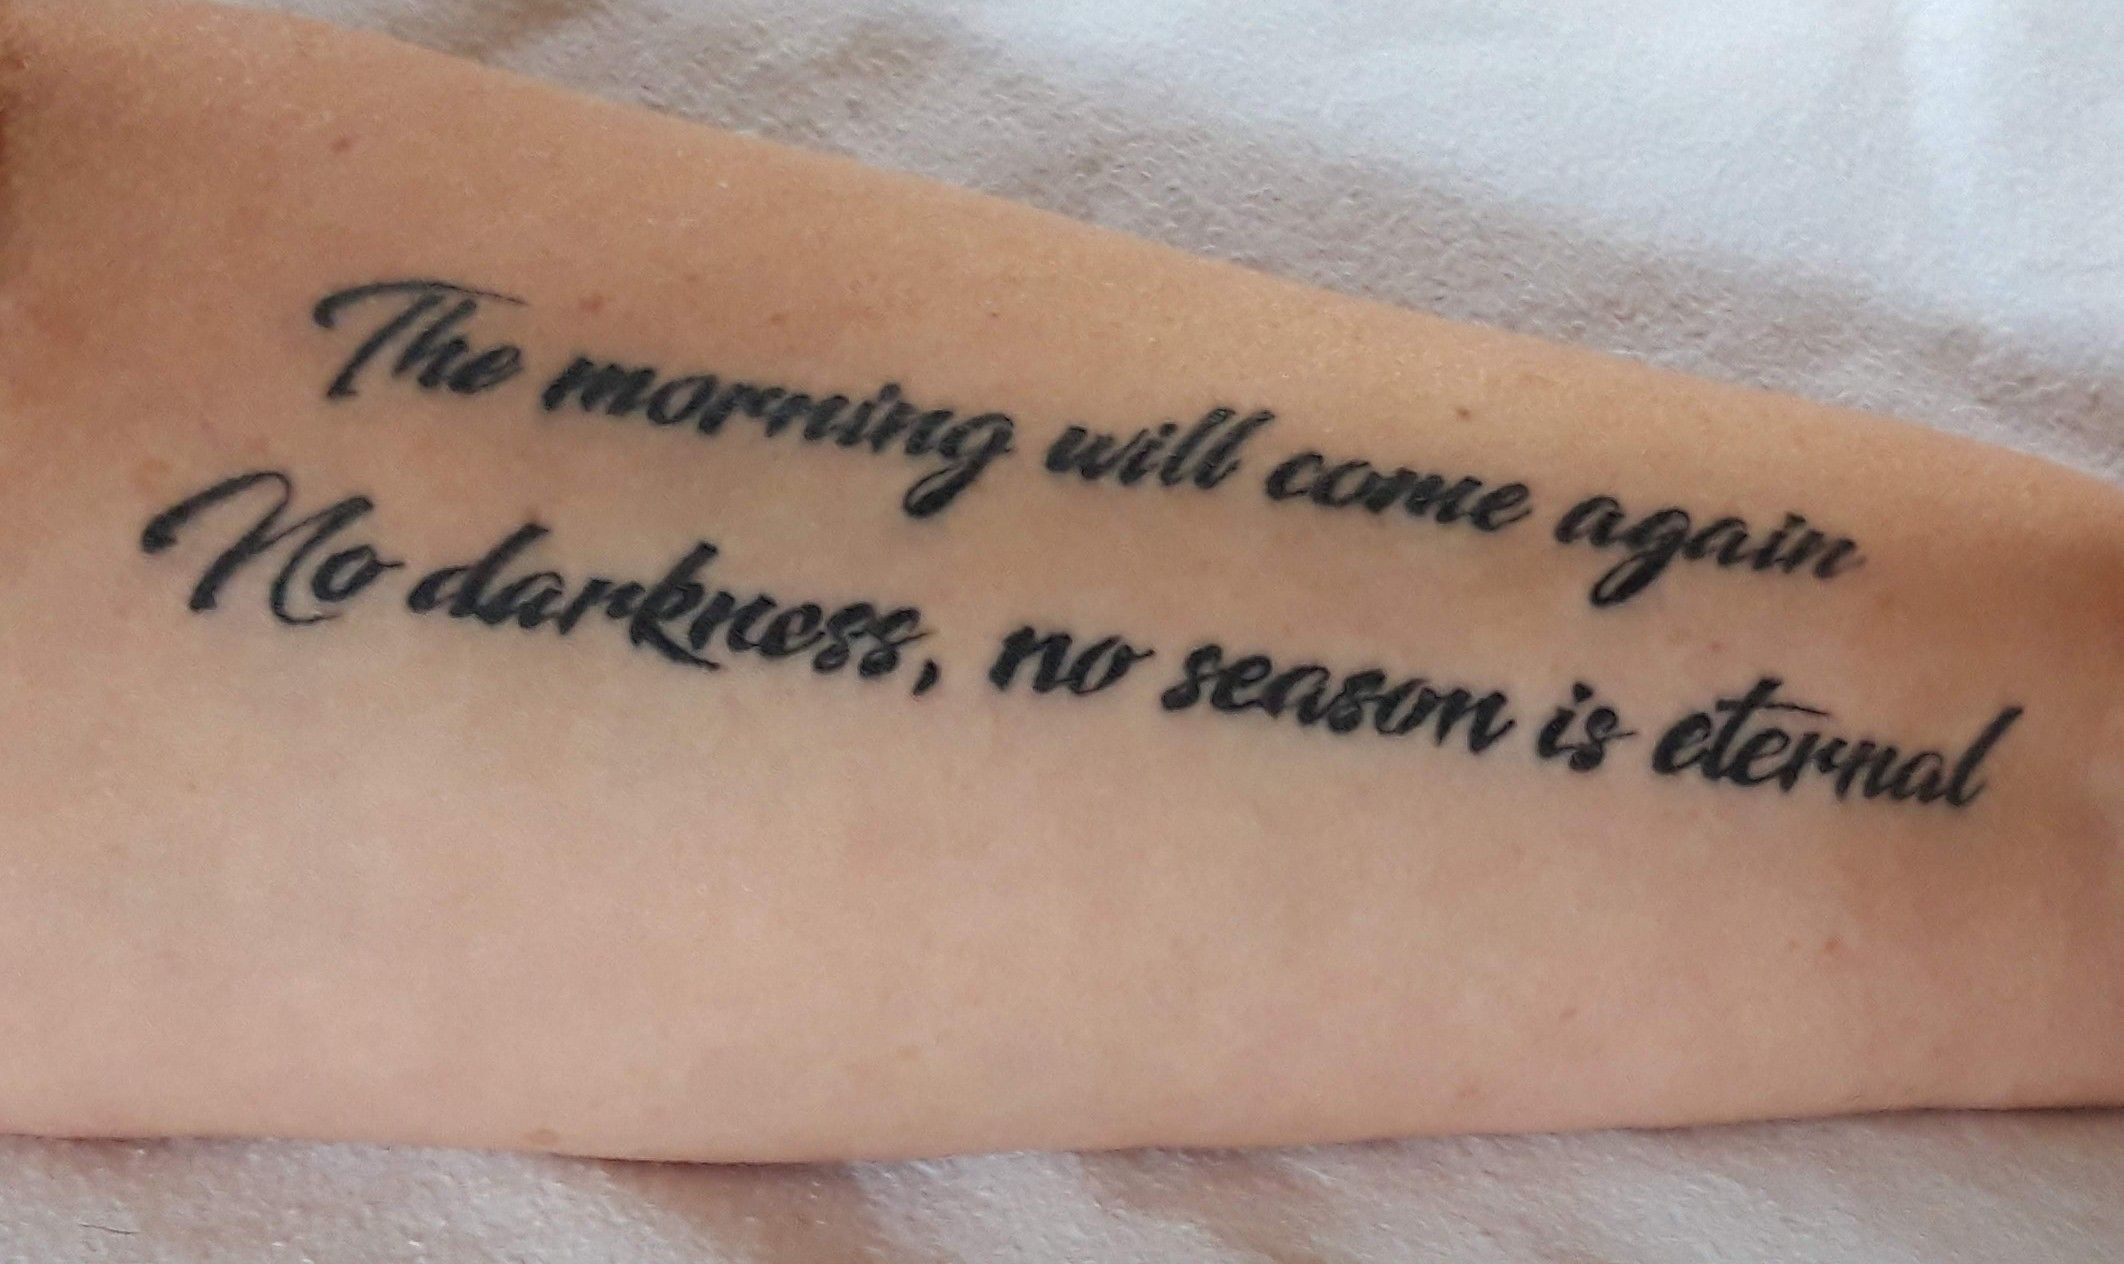 Bts spring day tattoo namjoon told us to use bts to love